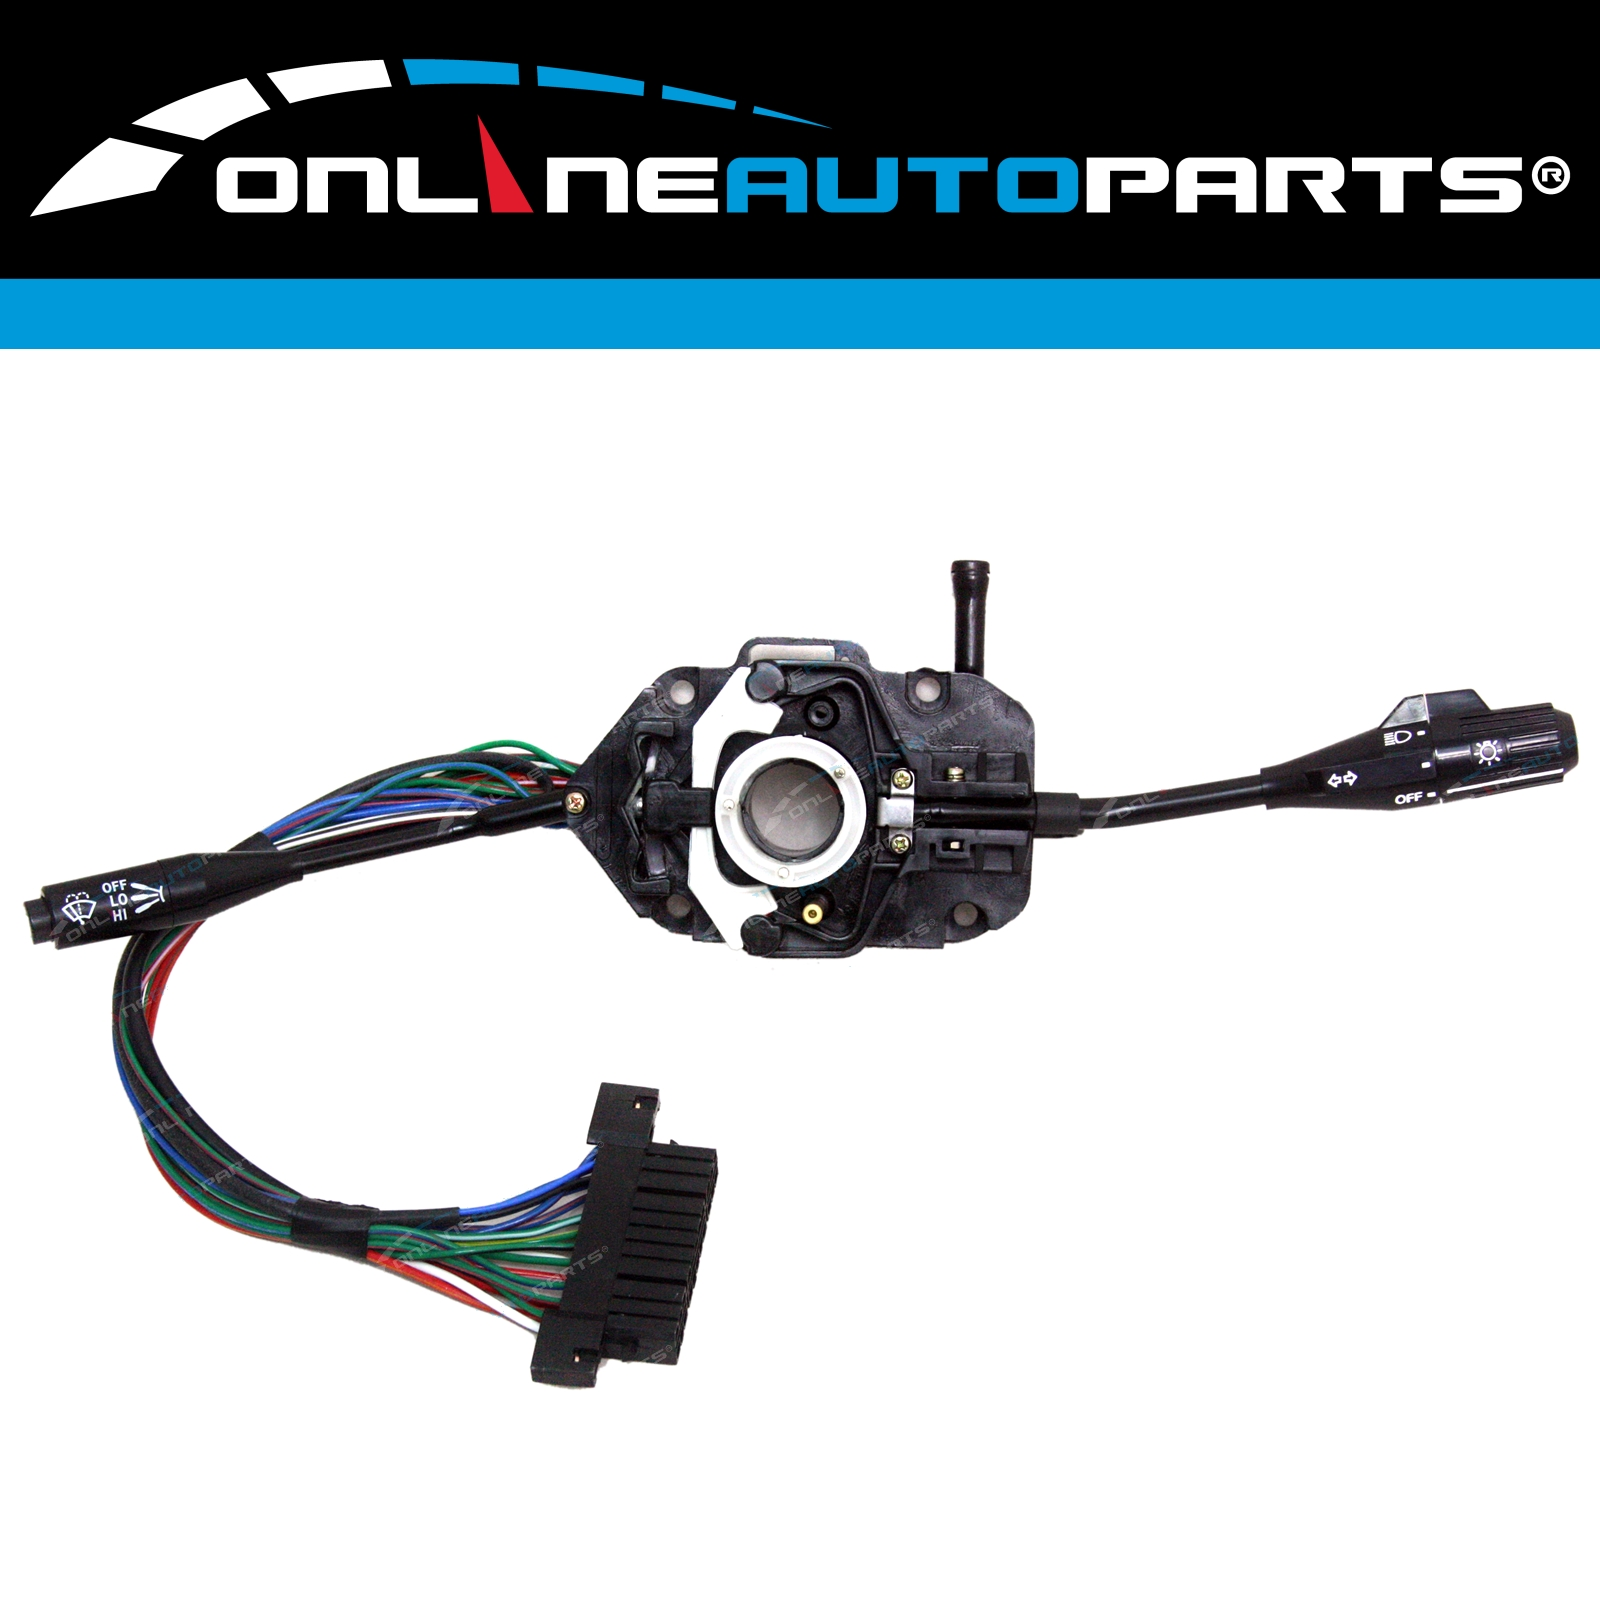 Details about Headlamp Indicator Wiper Combination Switch for Celica RA23  RA28 RA40 TA22 TA23